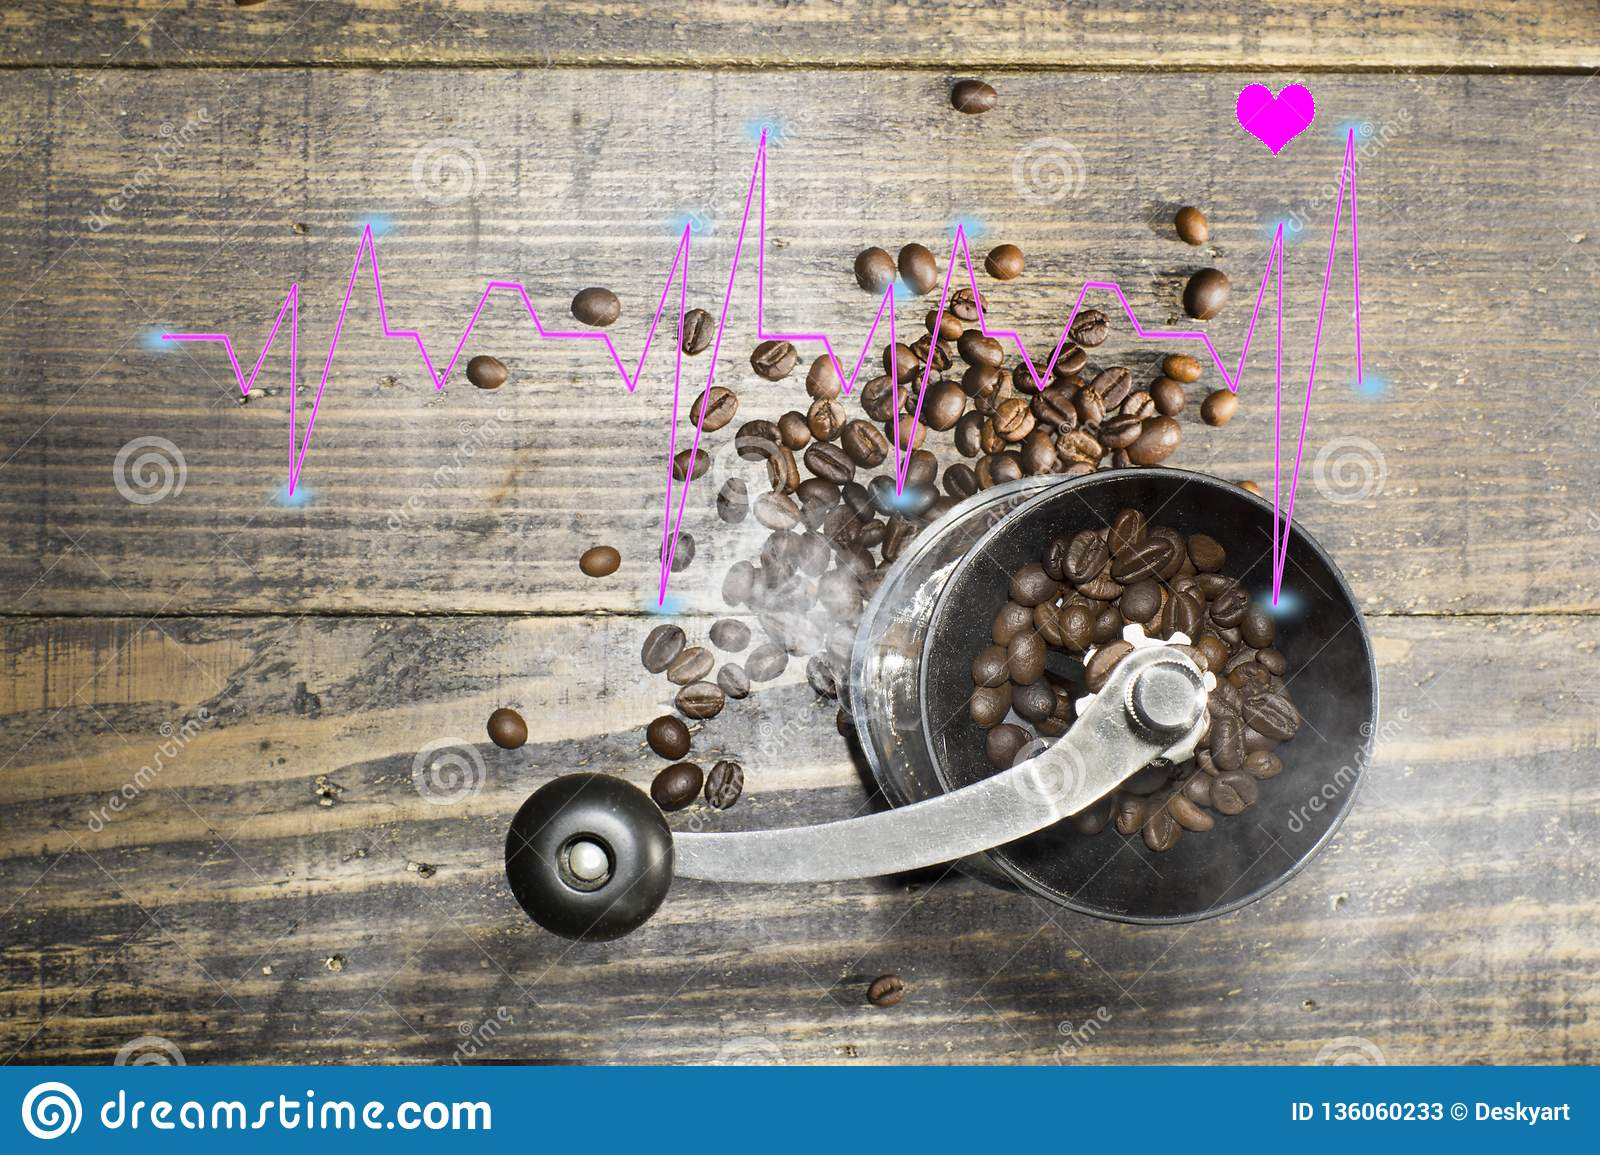 The manual coffee grinder contains coffee beans with a line diagram of the high and low heart beat rate. Heart healthcare concept